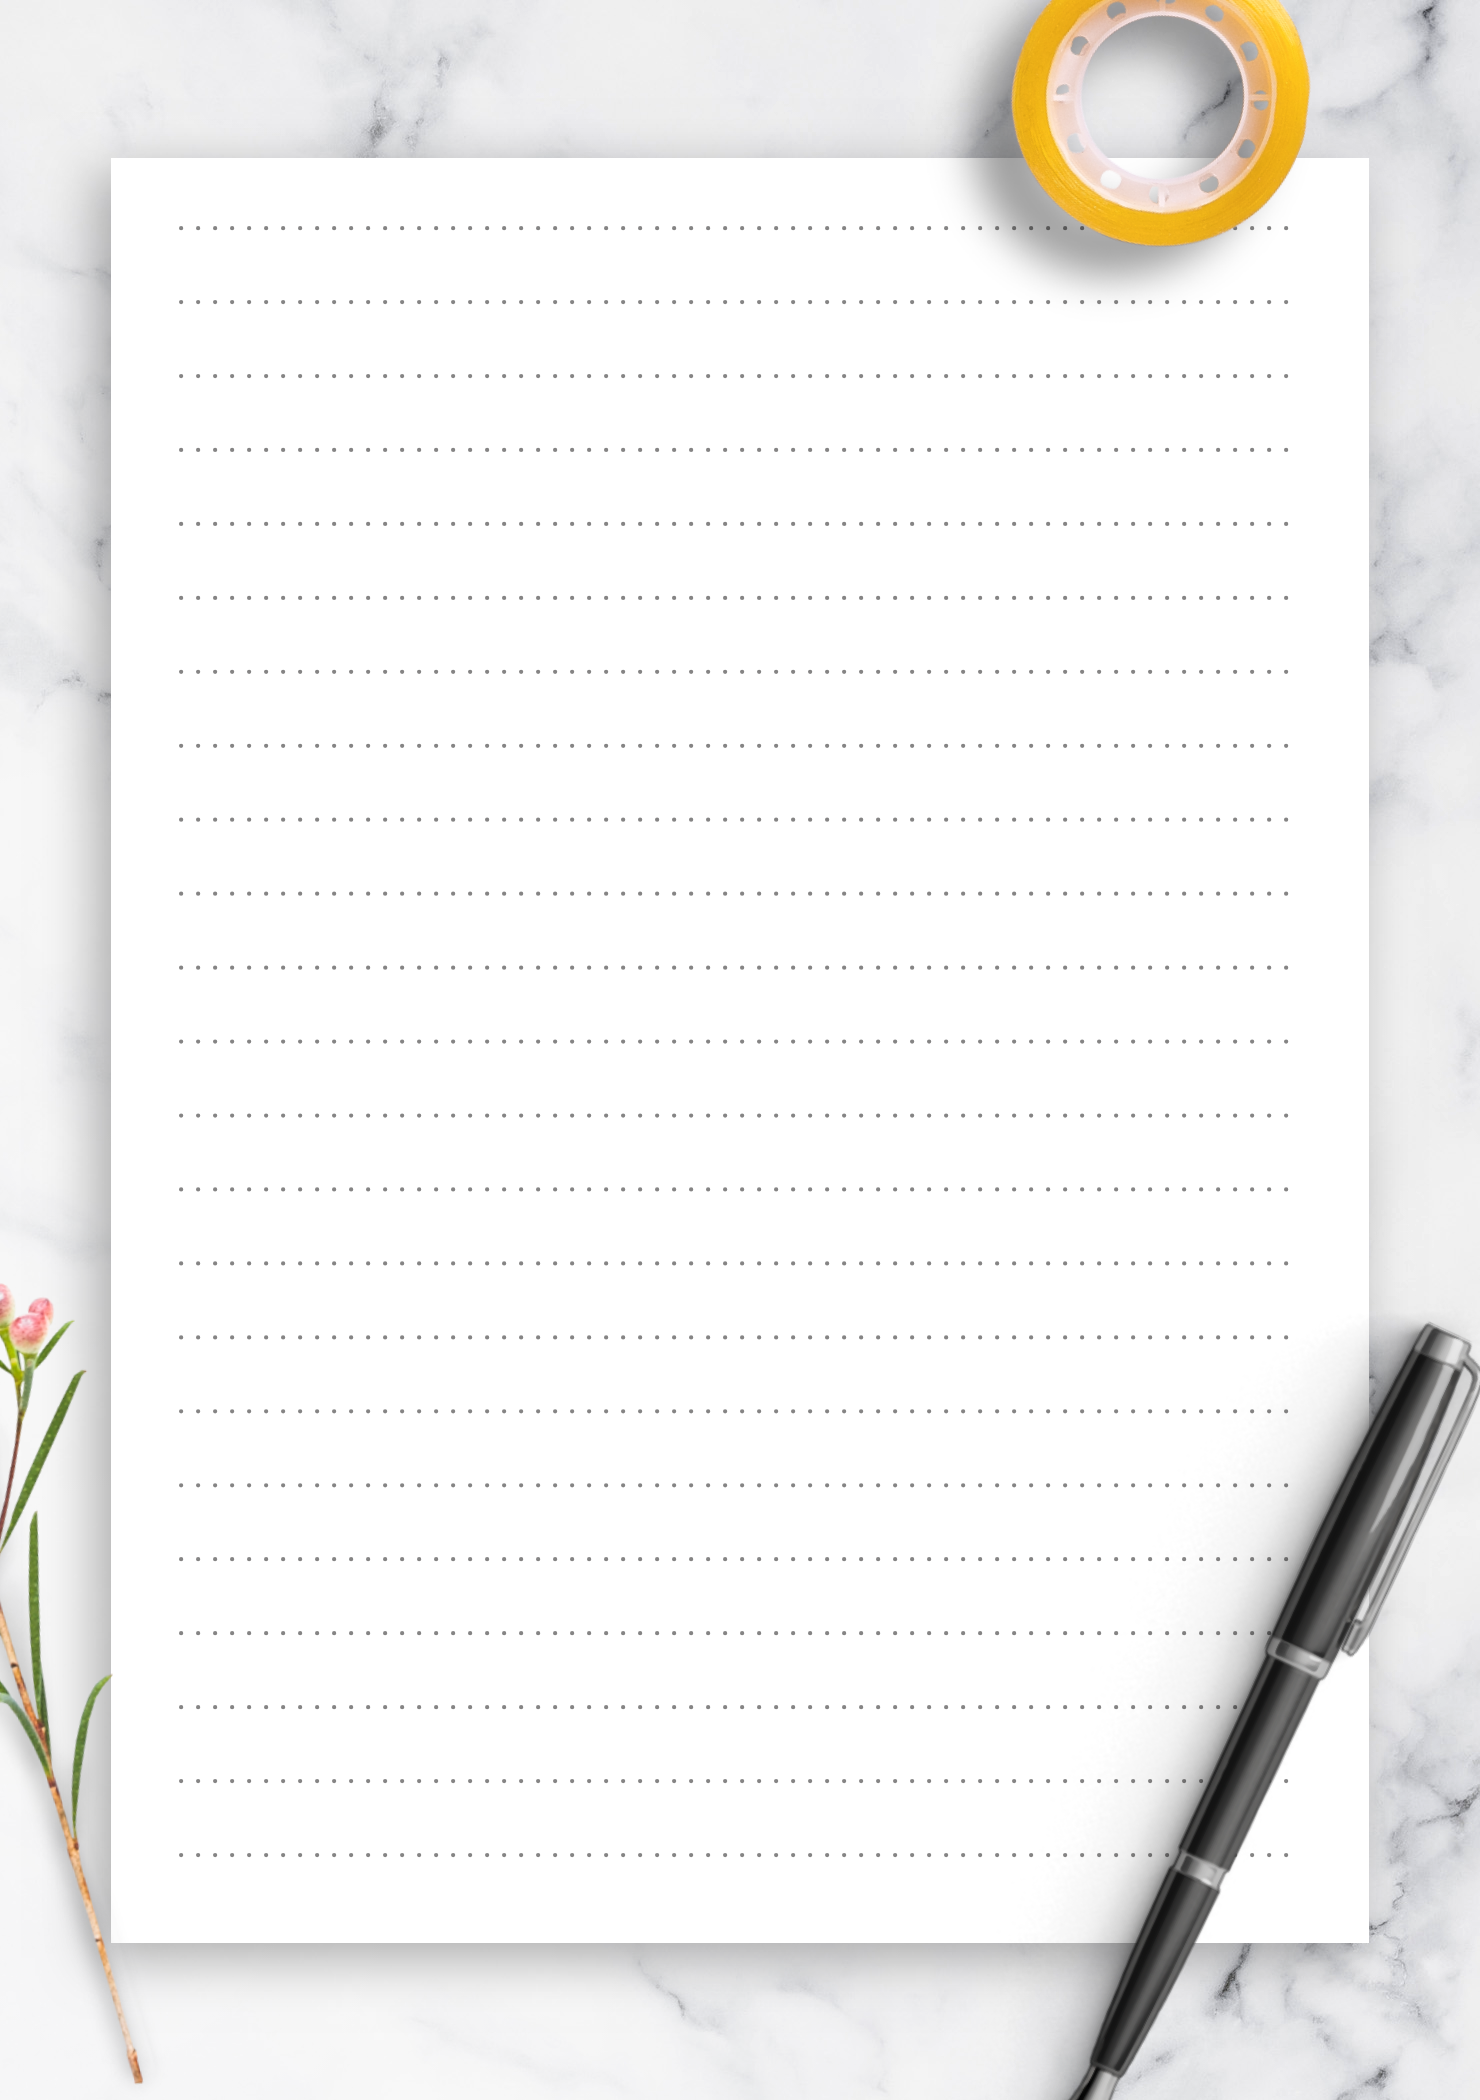 picture regarding Printable Dotted Paper titled No cost Printable Dotted Protected Paper Printables 8.7 mm line